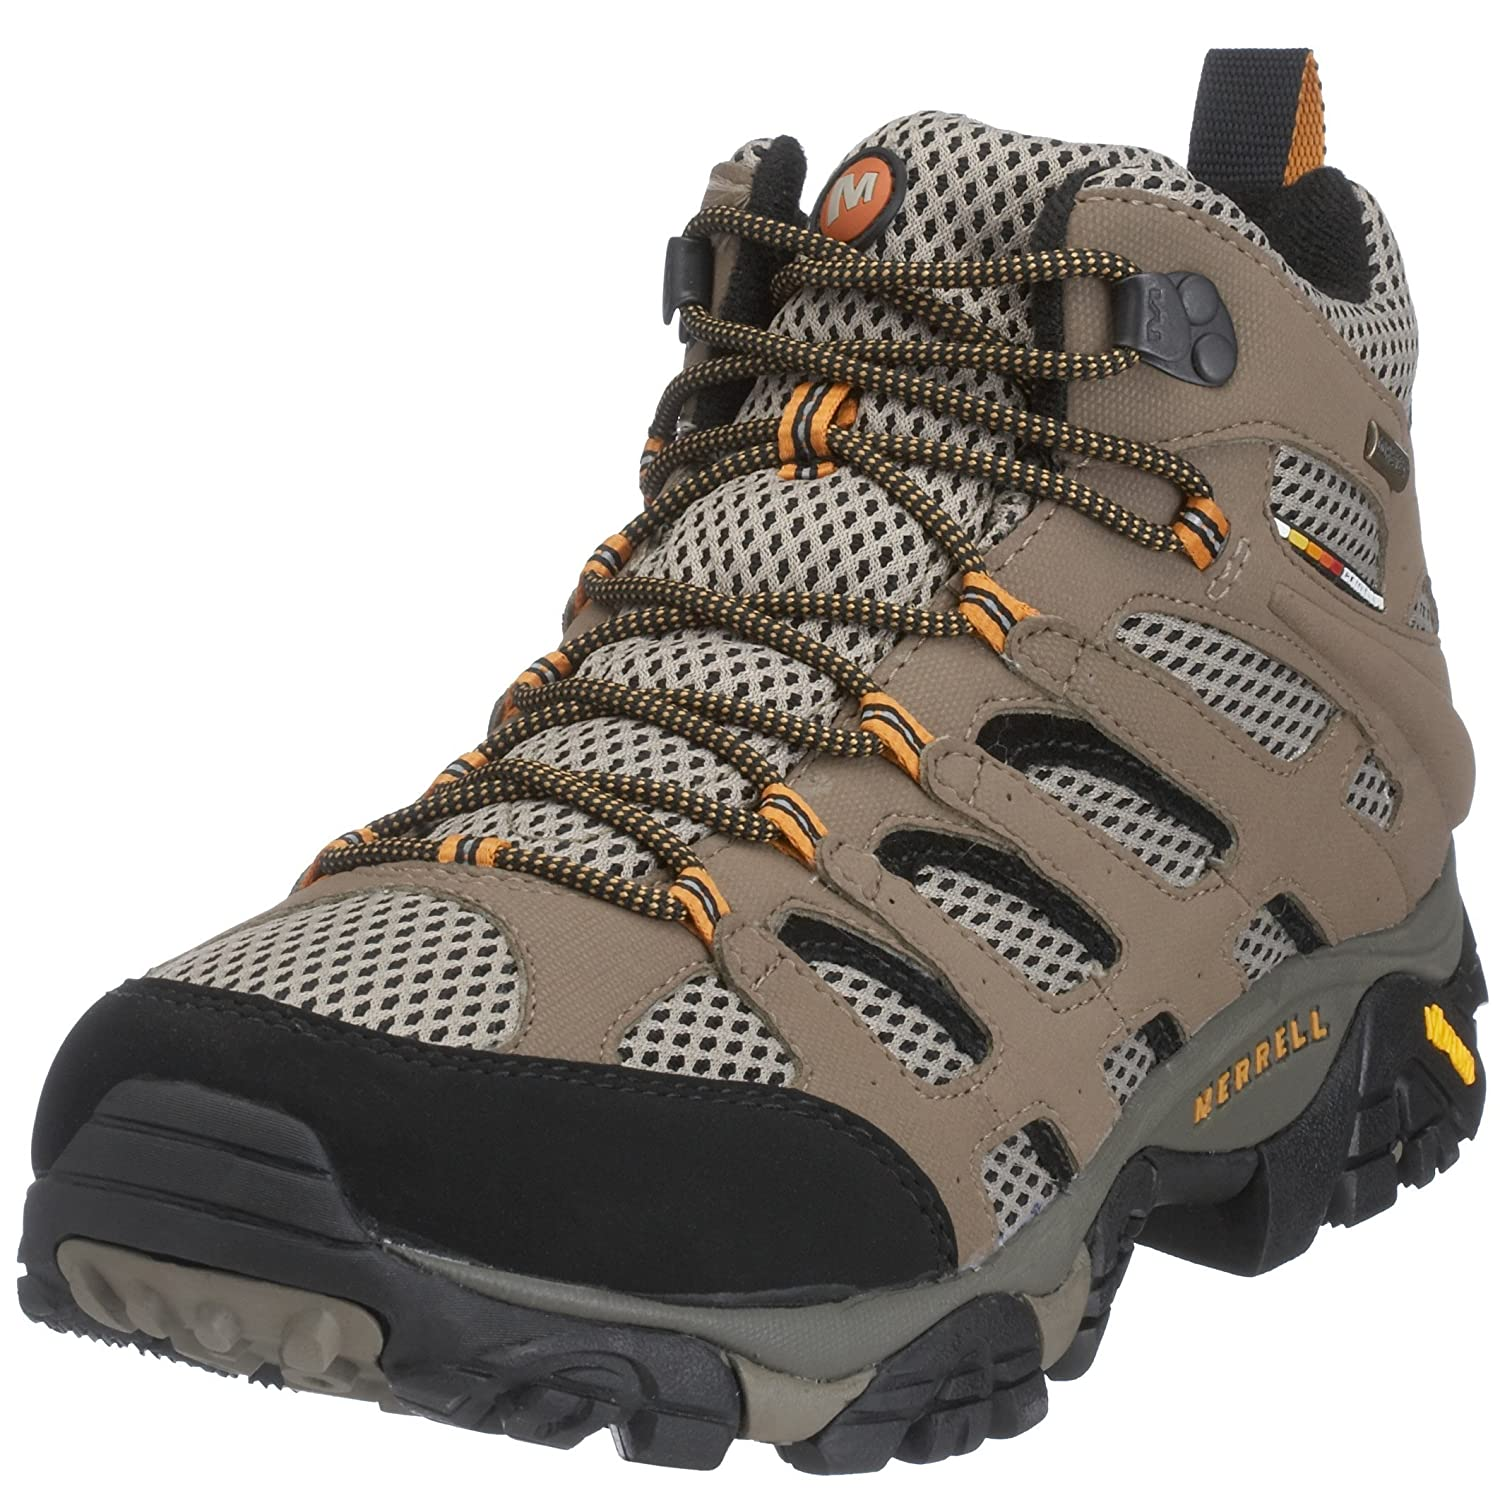 Merrell Men's Moab Mid Gore-Tex Waterproof Boot